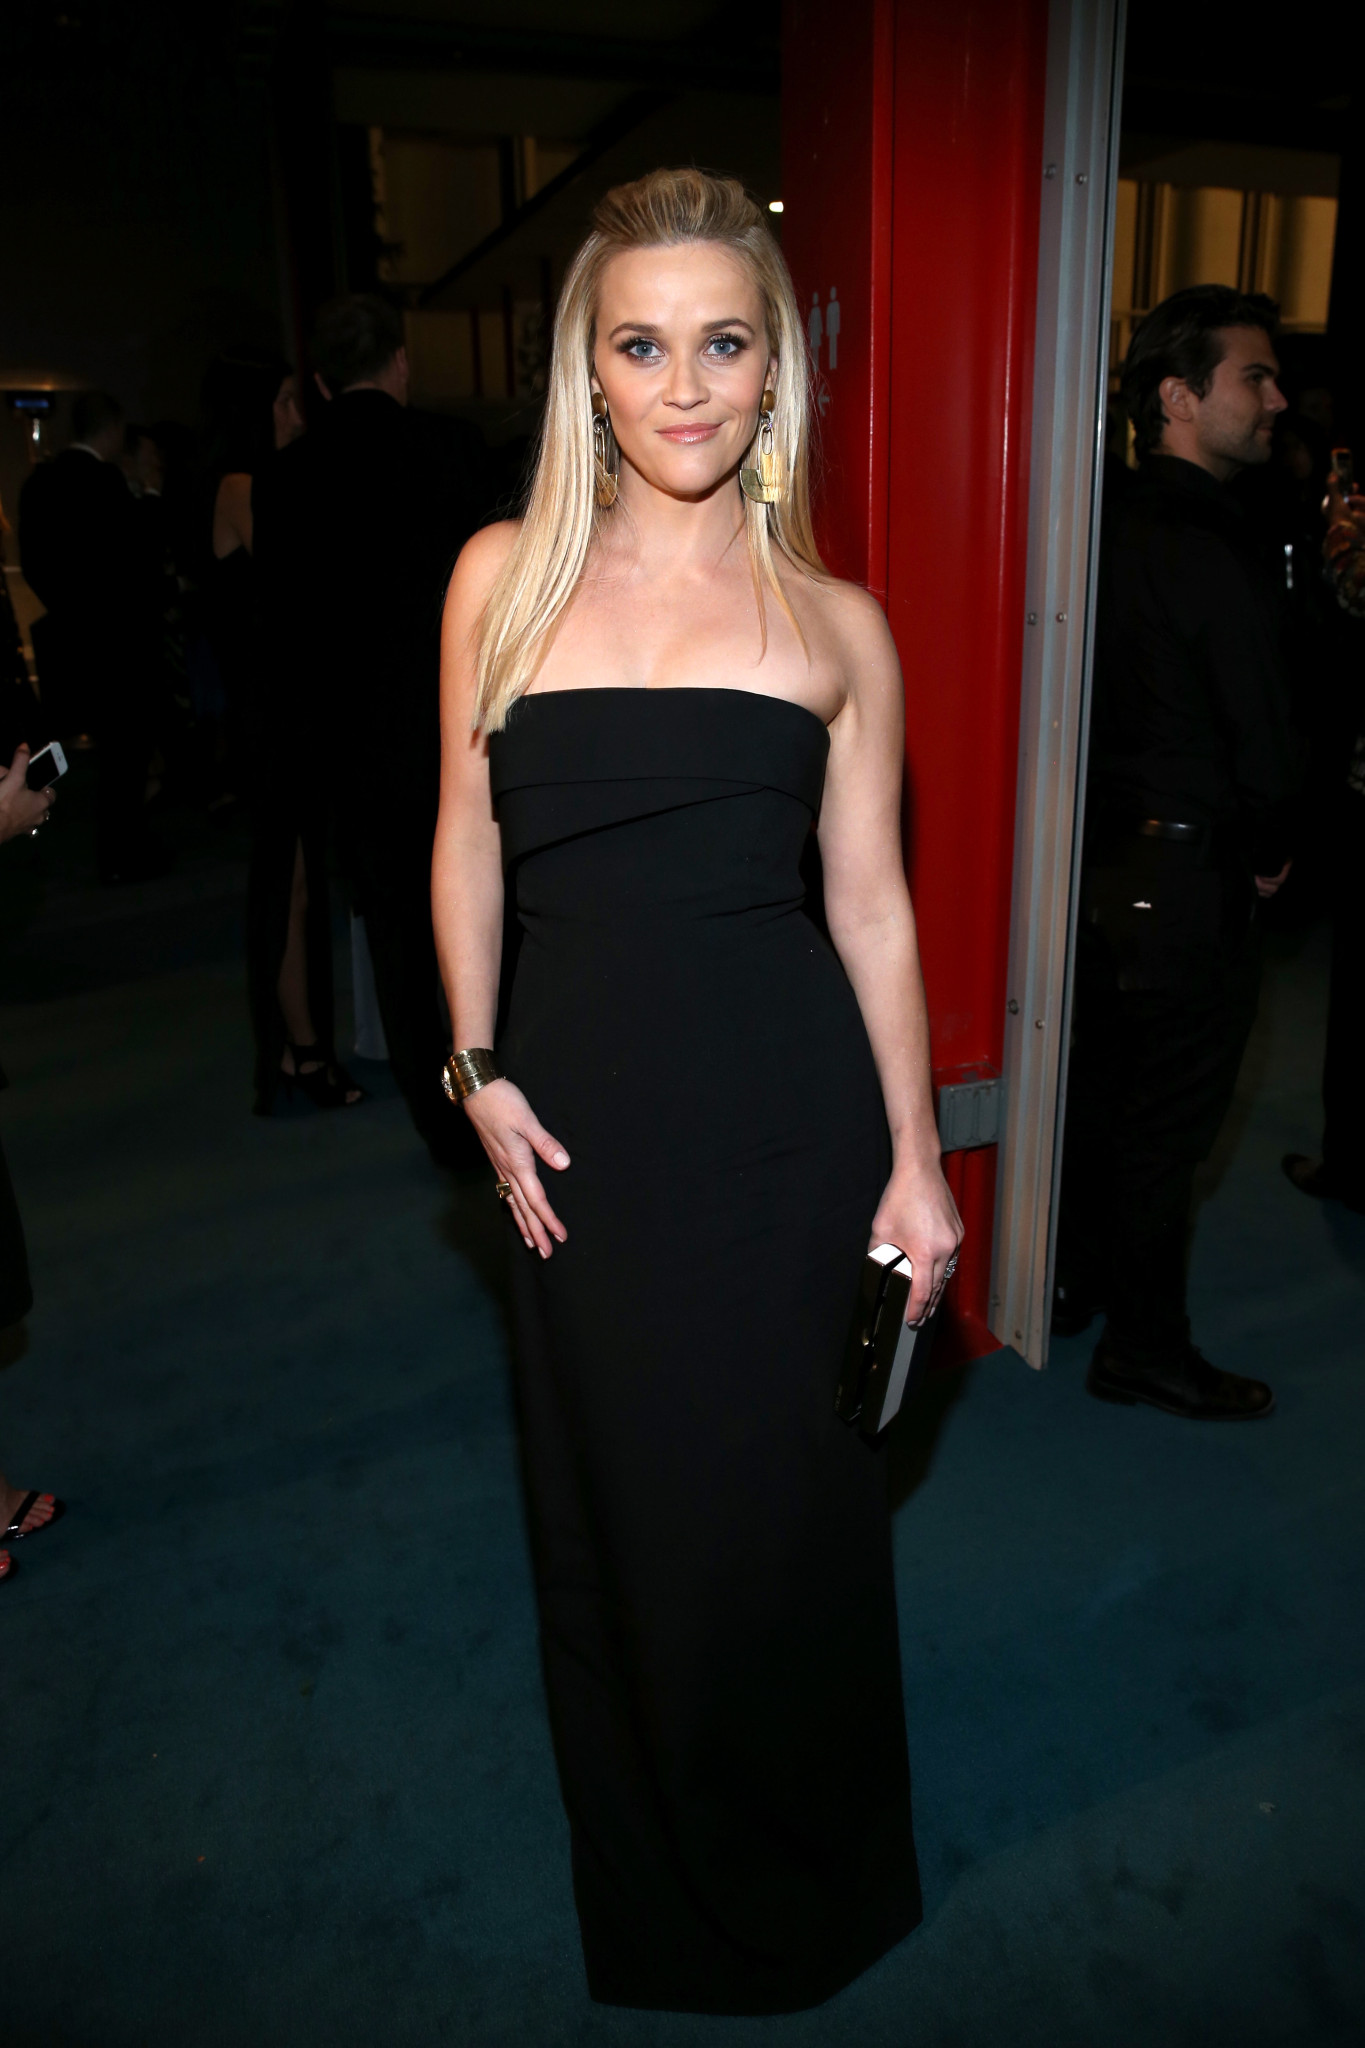 LOS ANGELES, CA - NOVEMBER 07:  Actress Reese Witherspoon attends LACMA 2015 Art+Film Gala Honoring James Turrell and Alejandro G Iñárritu, Presented by Gucci at LACMA on November 7, 2015 in Los Angeles, California.  (Photo by Jonathan Leibson/Getty Images for LACMA) *** Local Caption *** Reese Witherspoon